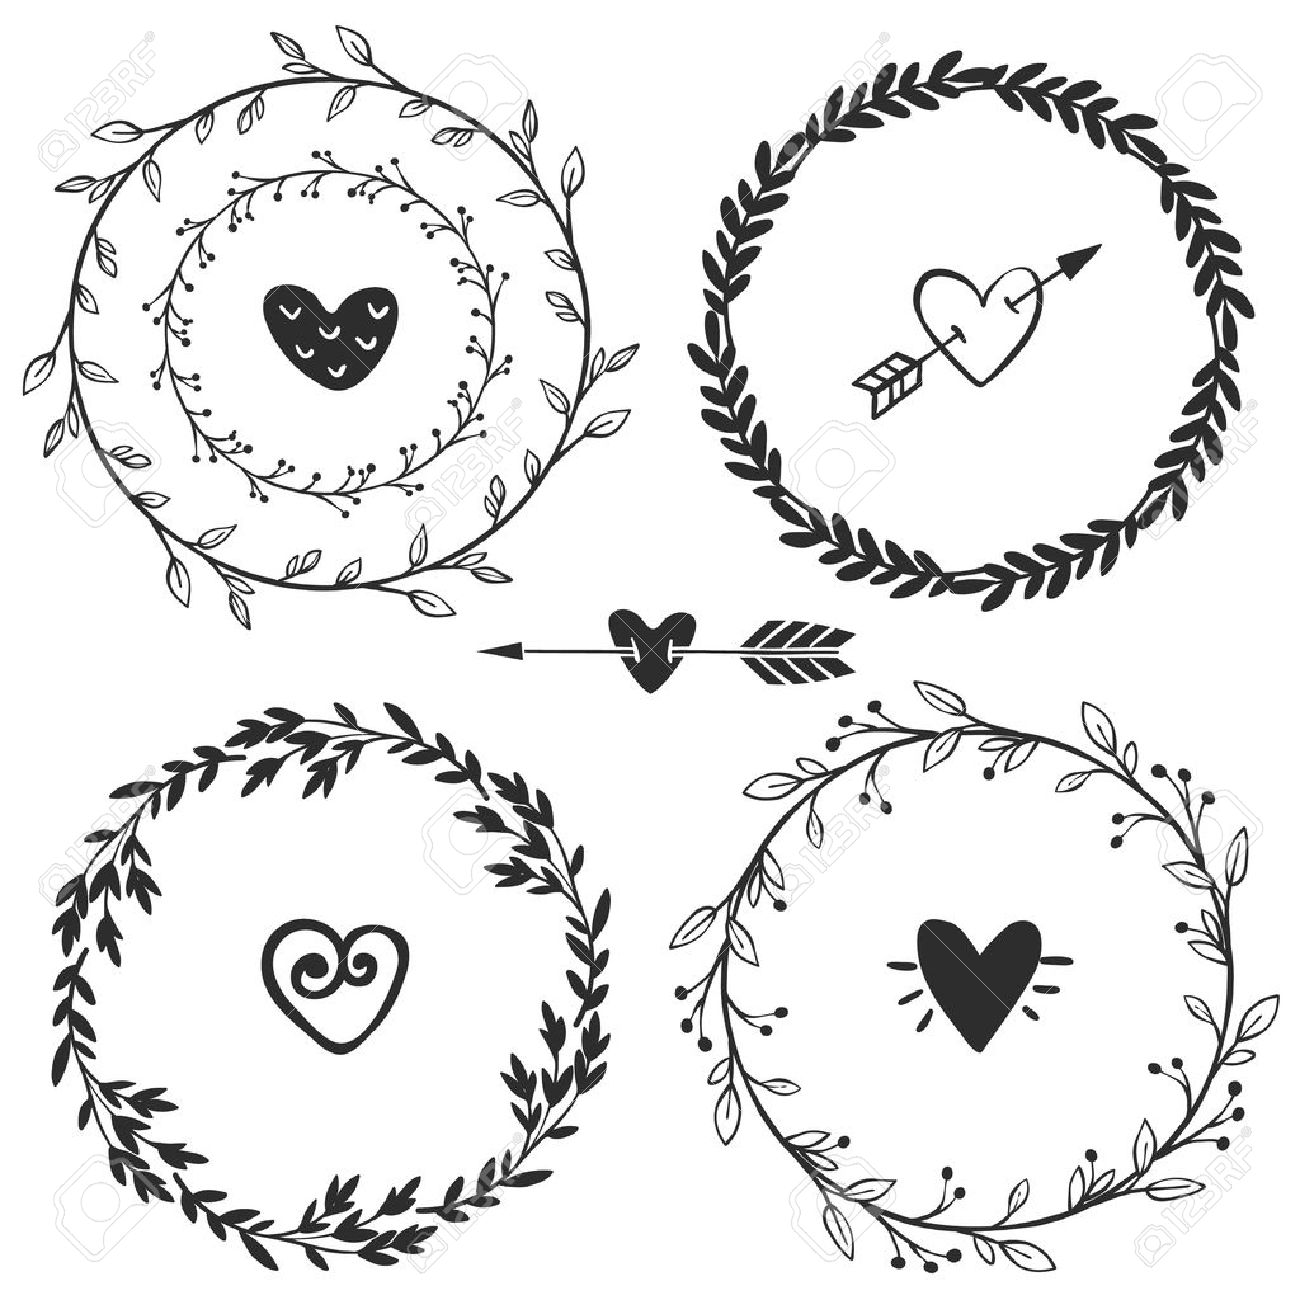 1300x1300 Hand Drawn Rustic Vintage Wreaths With Hearts. Floral Vector